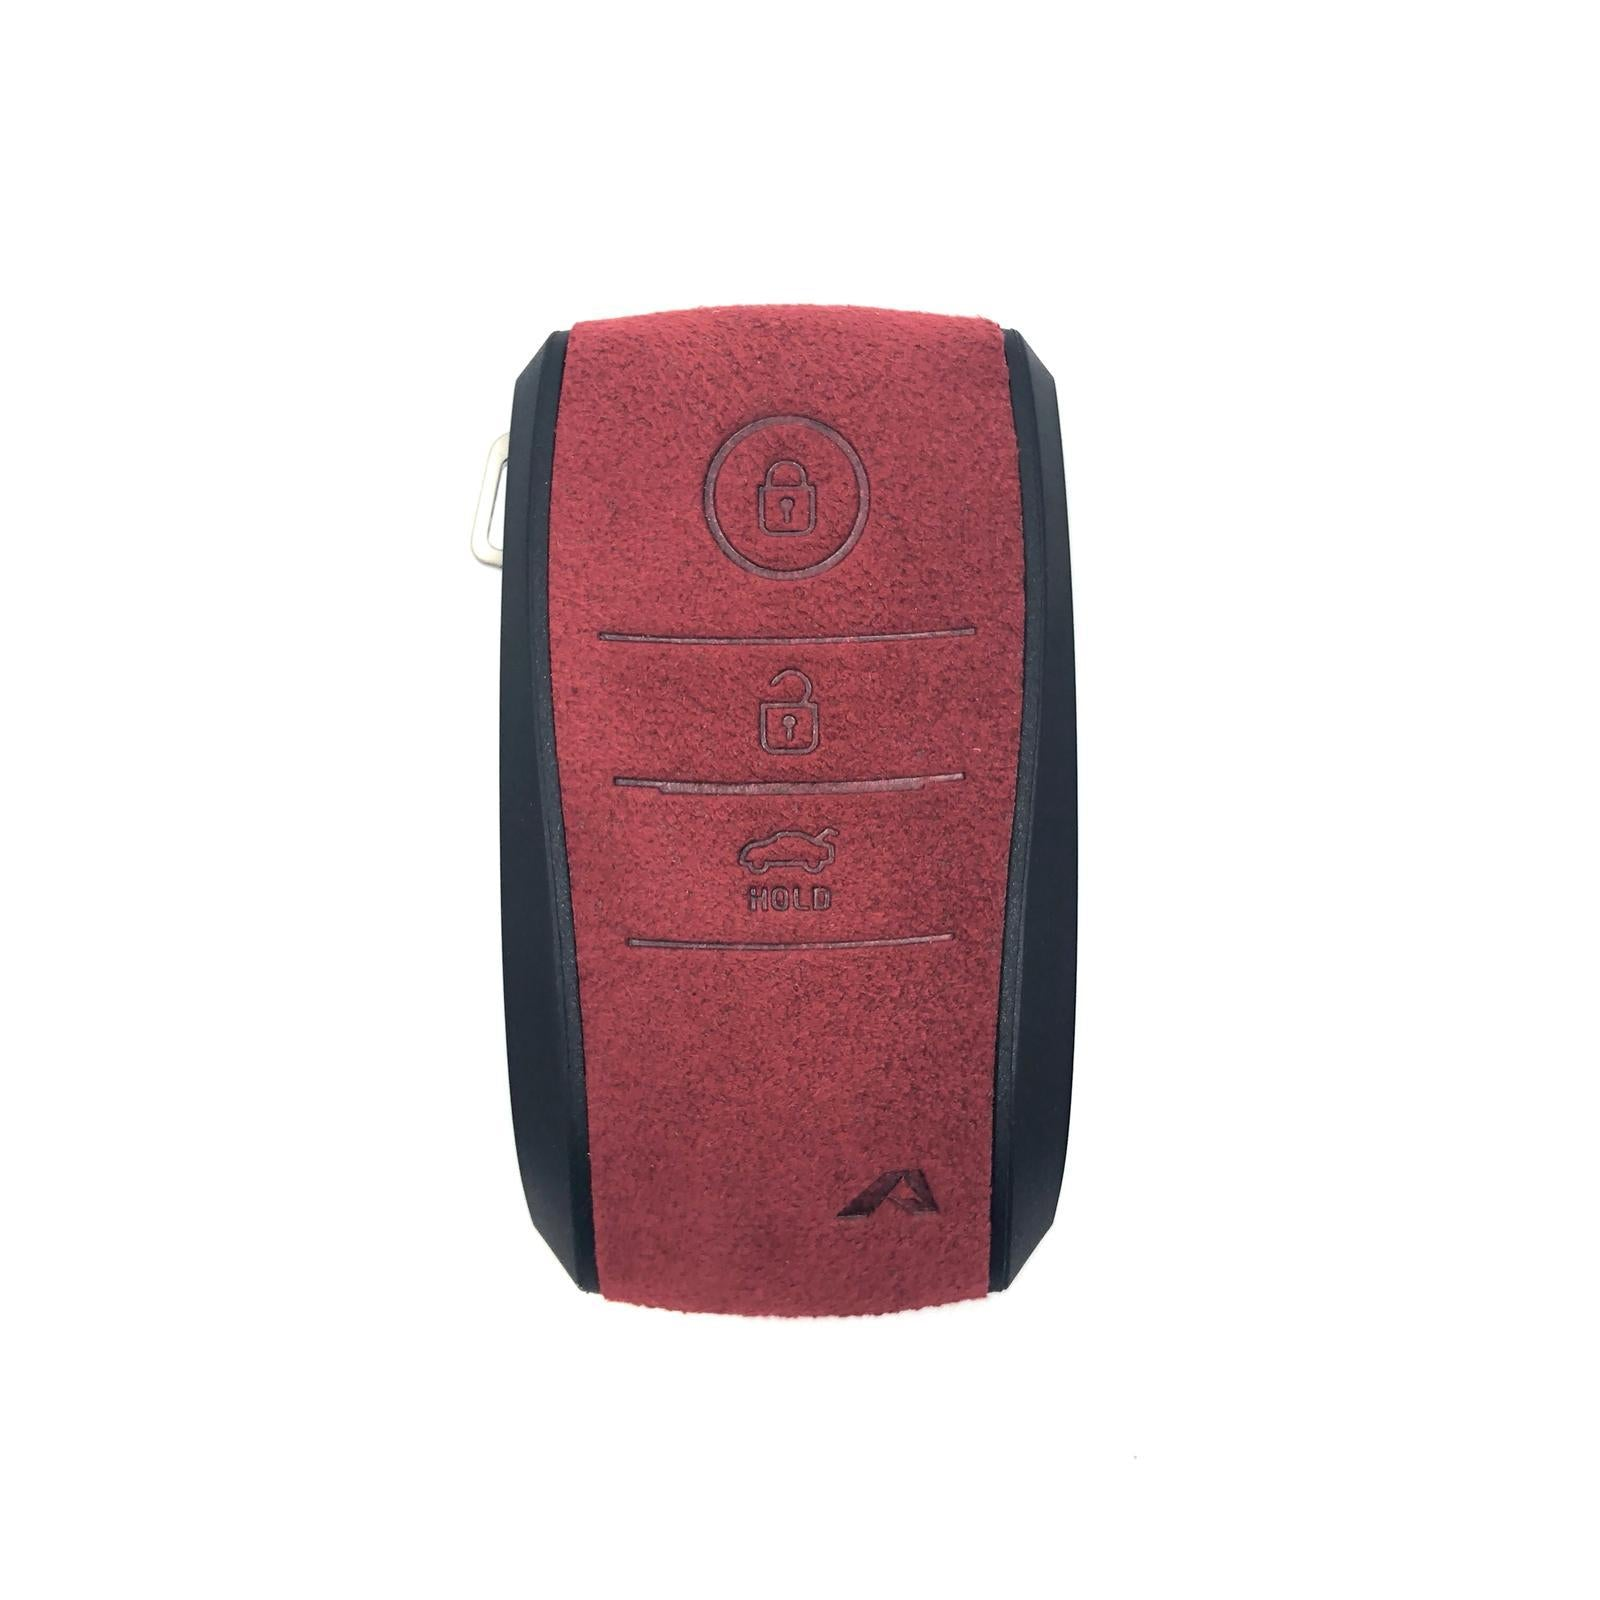 Aegis Car Key Holder - Aero Type for KIA (1900) - Red